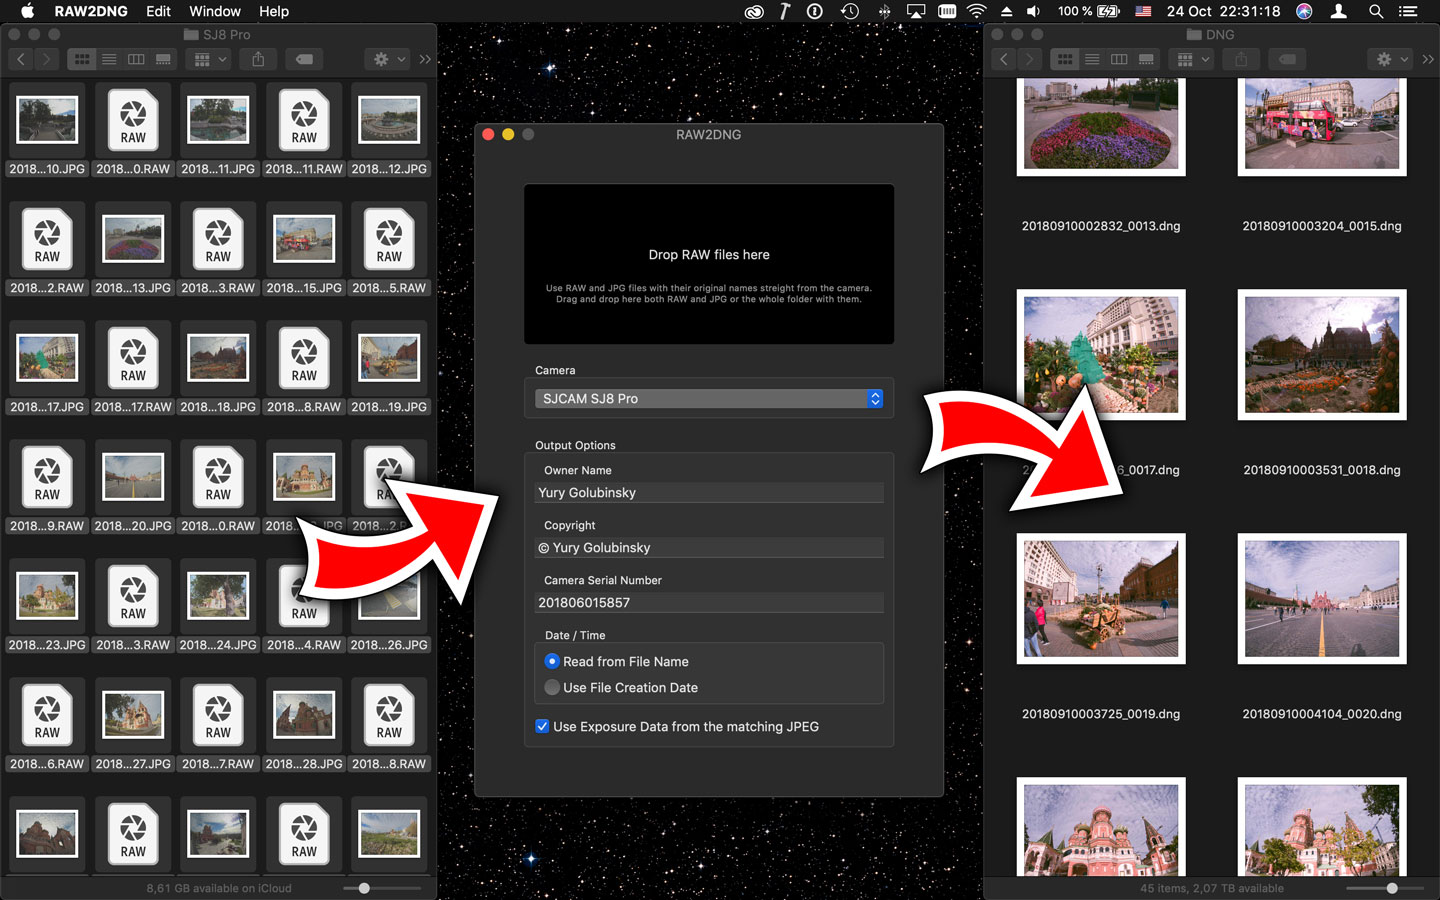 RAW2DNG, Mac App Store, application, macOS, Apple, review, action camera